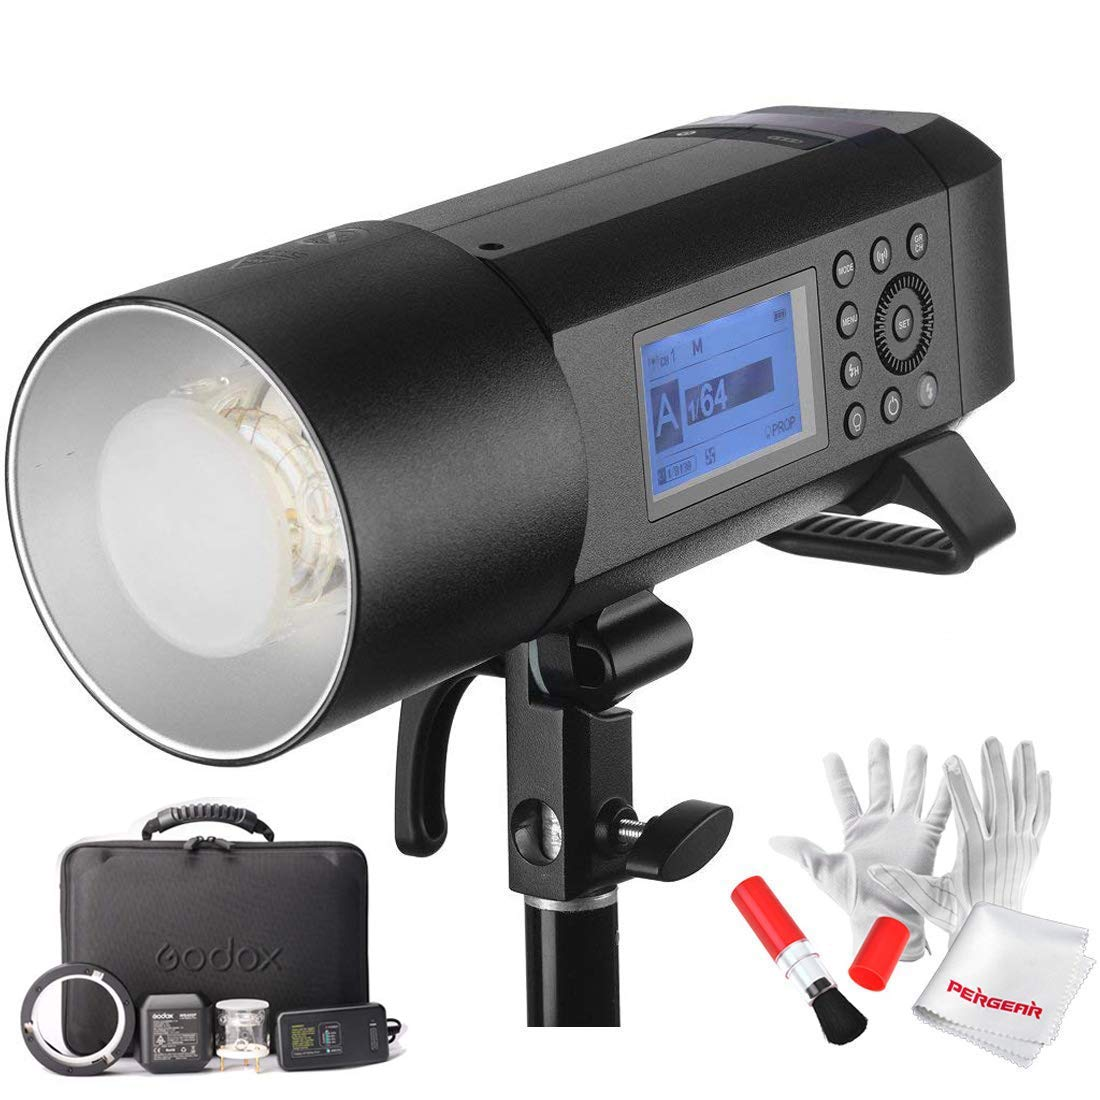 Godox AD400 Pro AD400Pro 400ws GN72 TTL Battery-Powered Monolight, 1/8000 HSS Outdoor Flash Strobe Light, Built-in Godox 2.4G System, 390 Full Power Pops, 0.01-1s Recycle Time, 30w LED Modeling Lamp by Godox (Image #1)